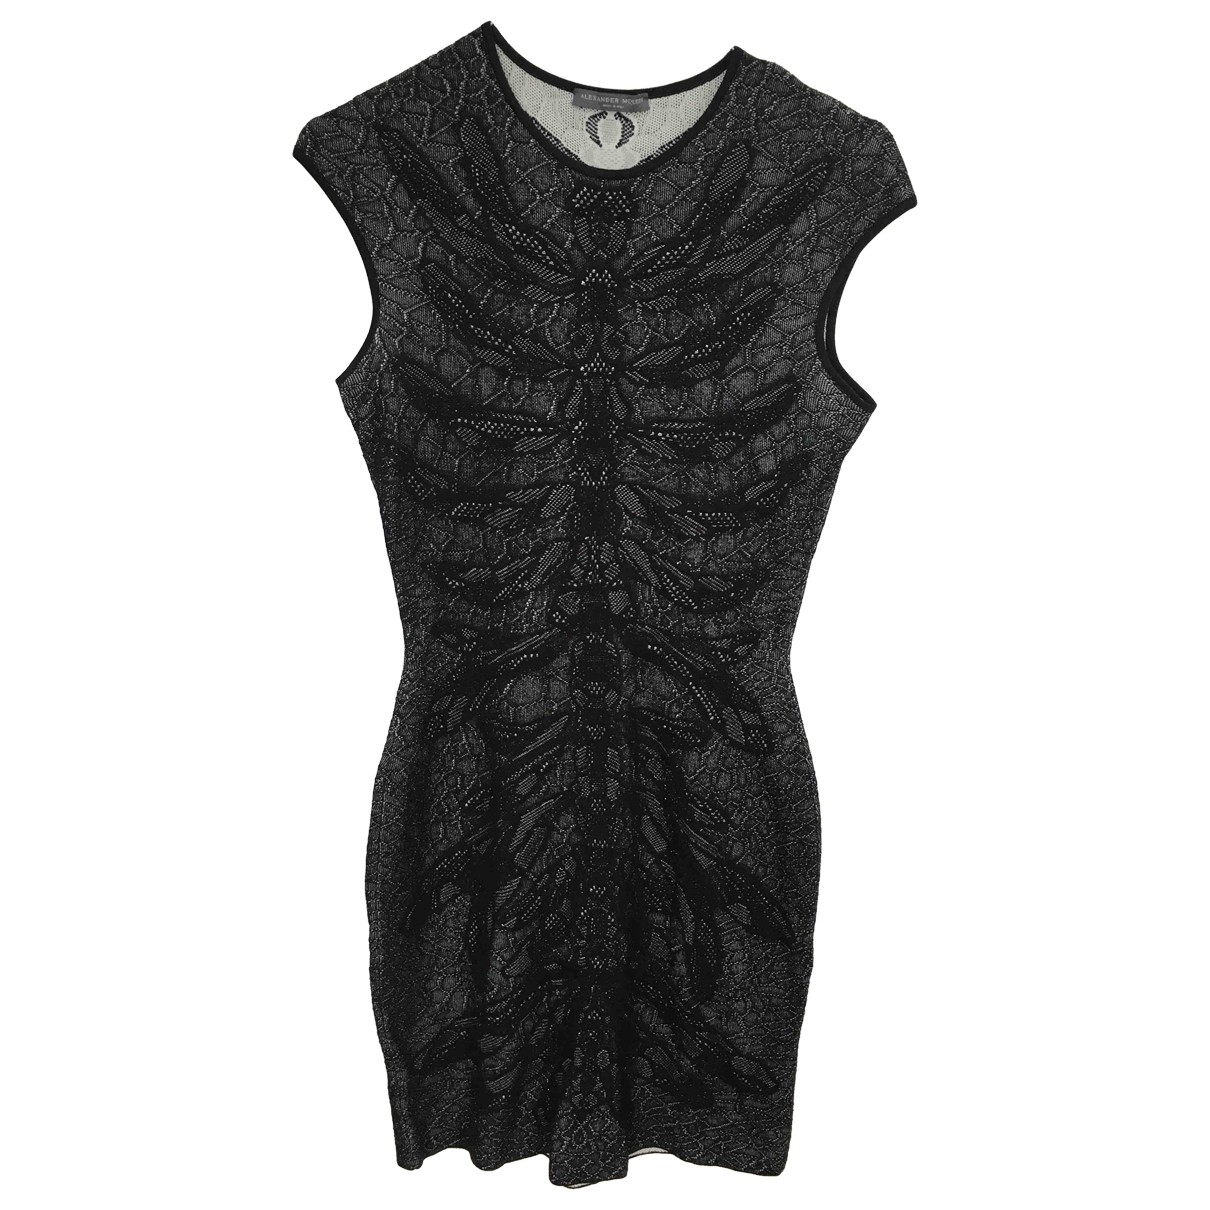 Alexander Mcqueen \N Black Silk dress for Women S International